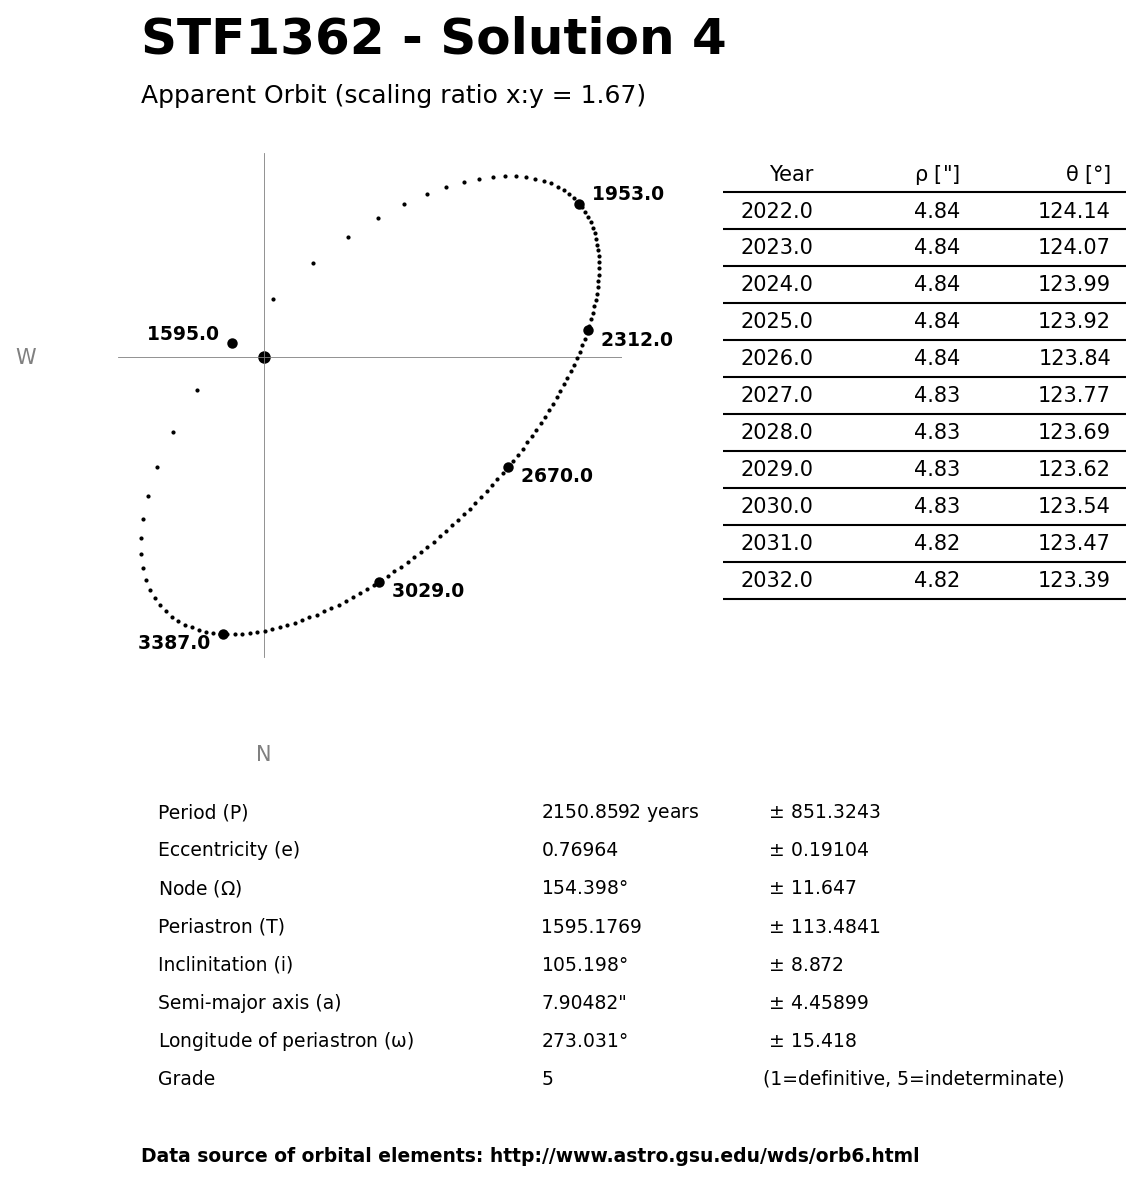 ../images/binary-star-orbits/STF1362-orbit-solution-4.jpg